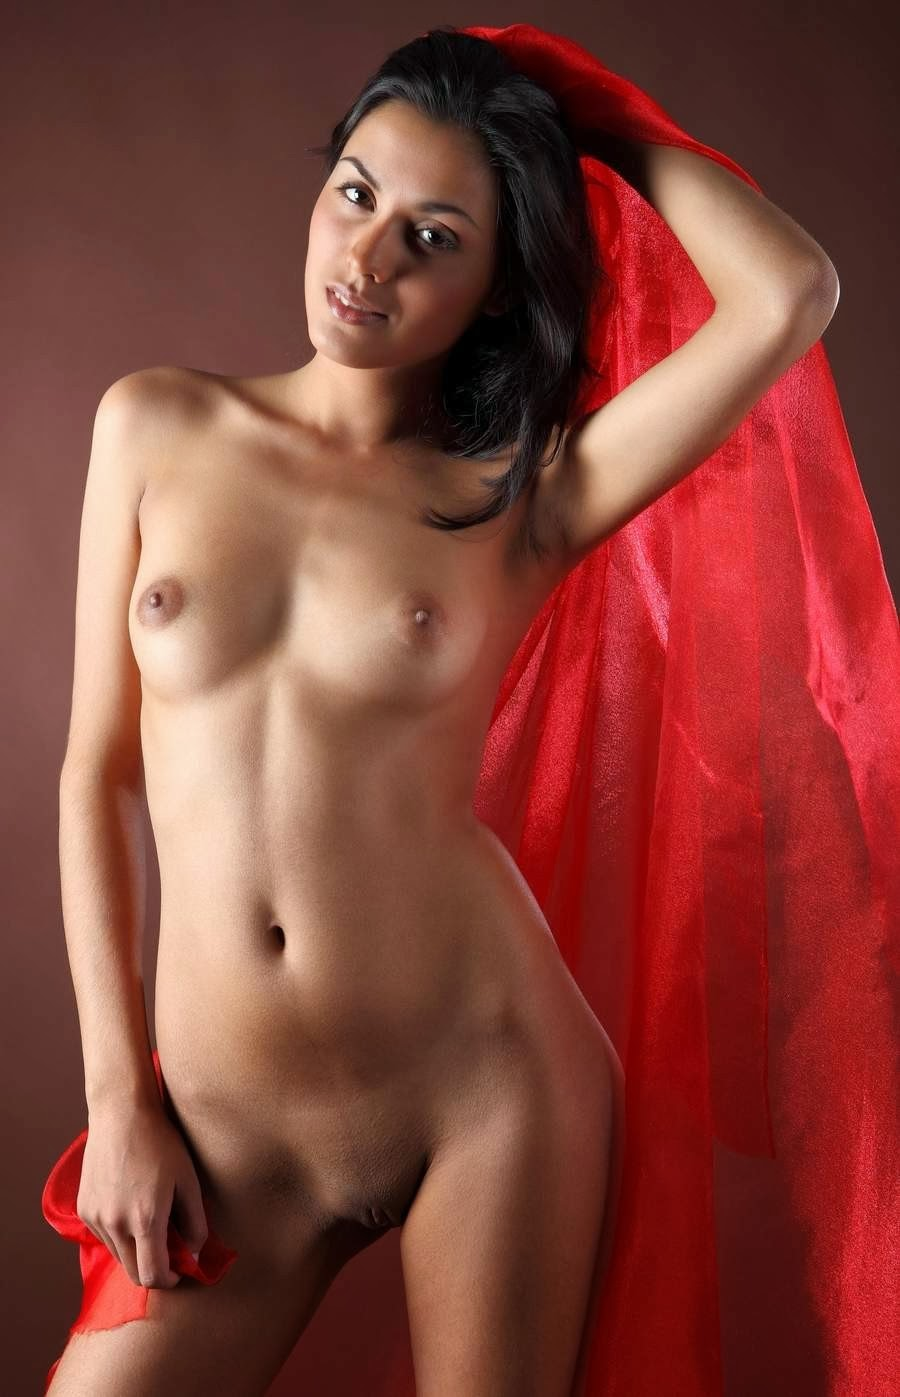 dark haired women nude